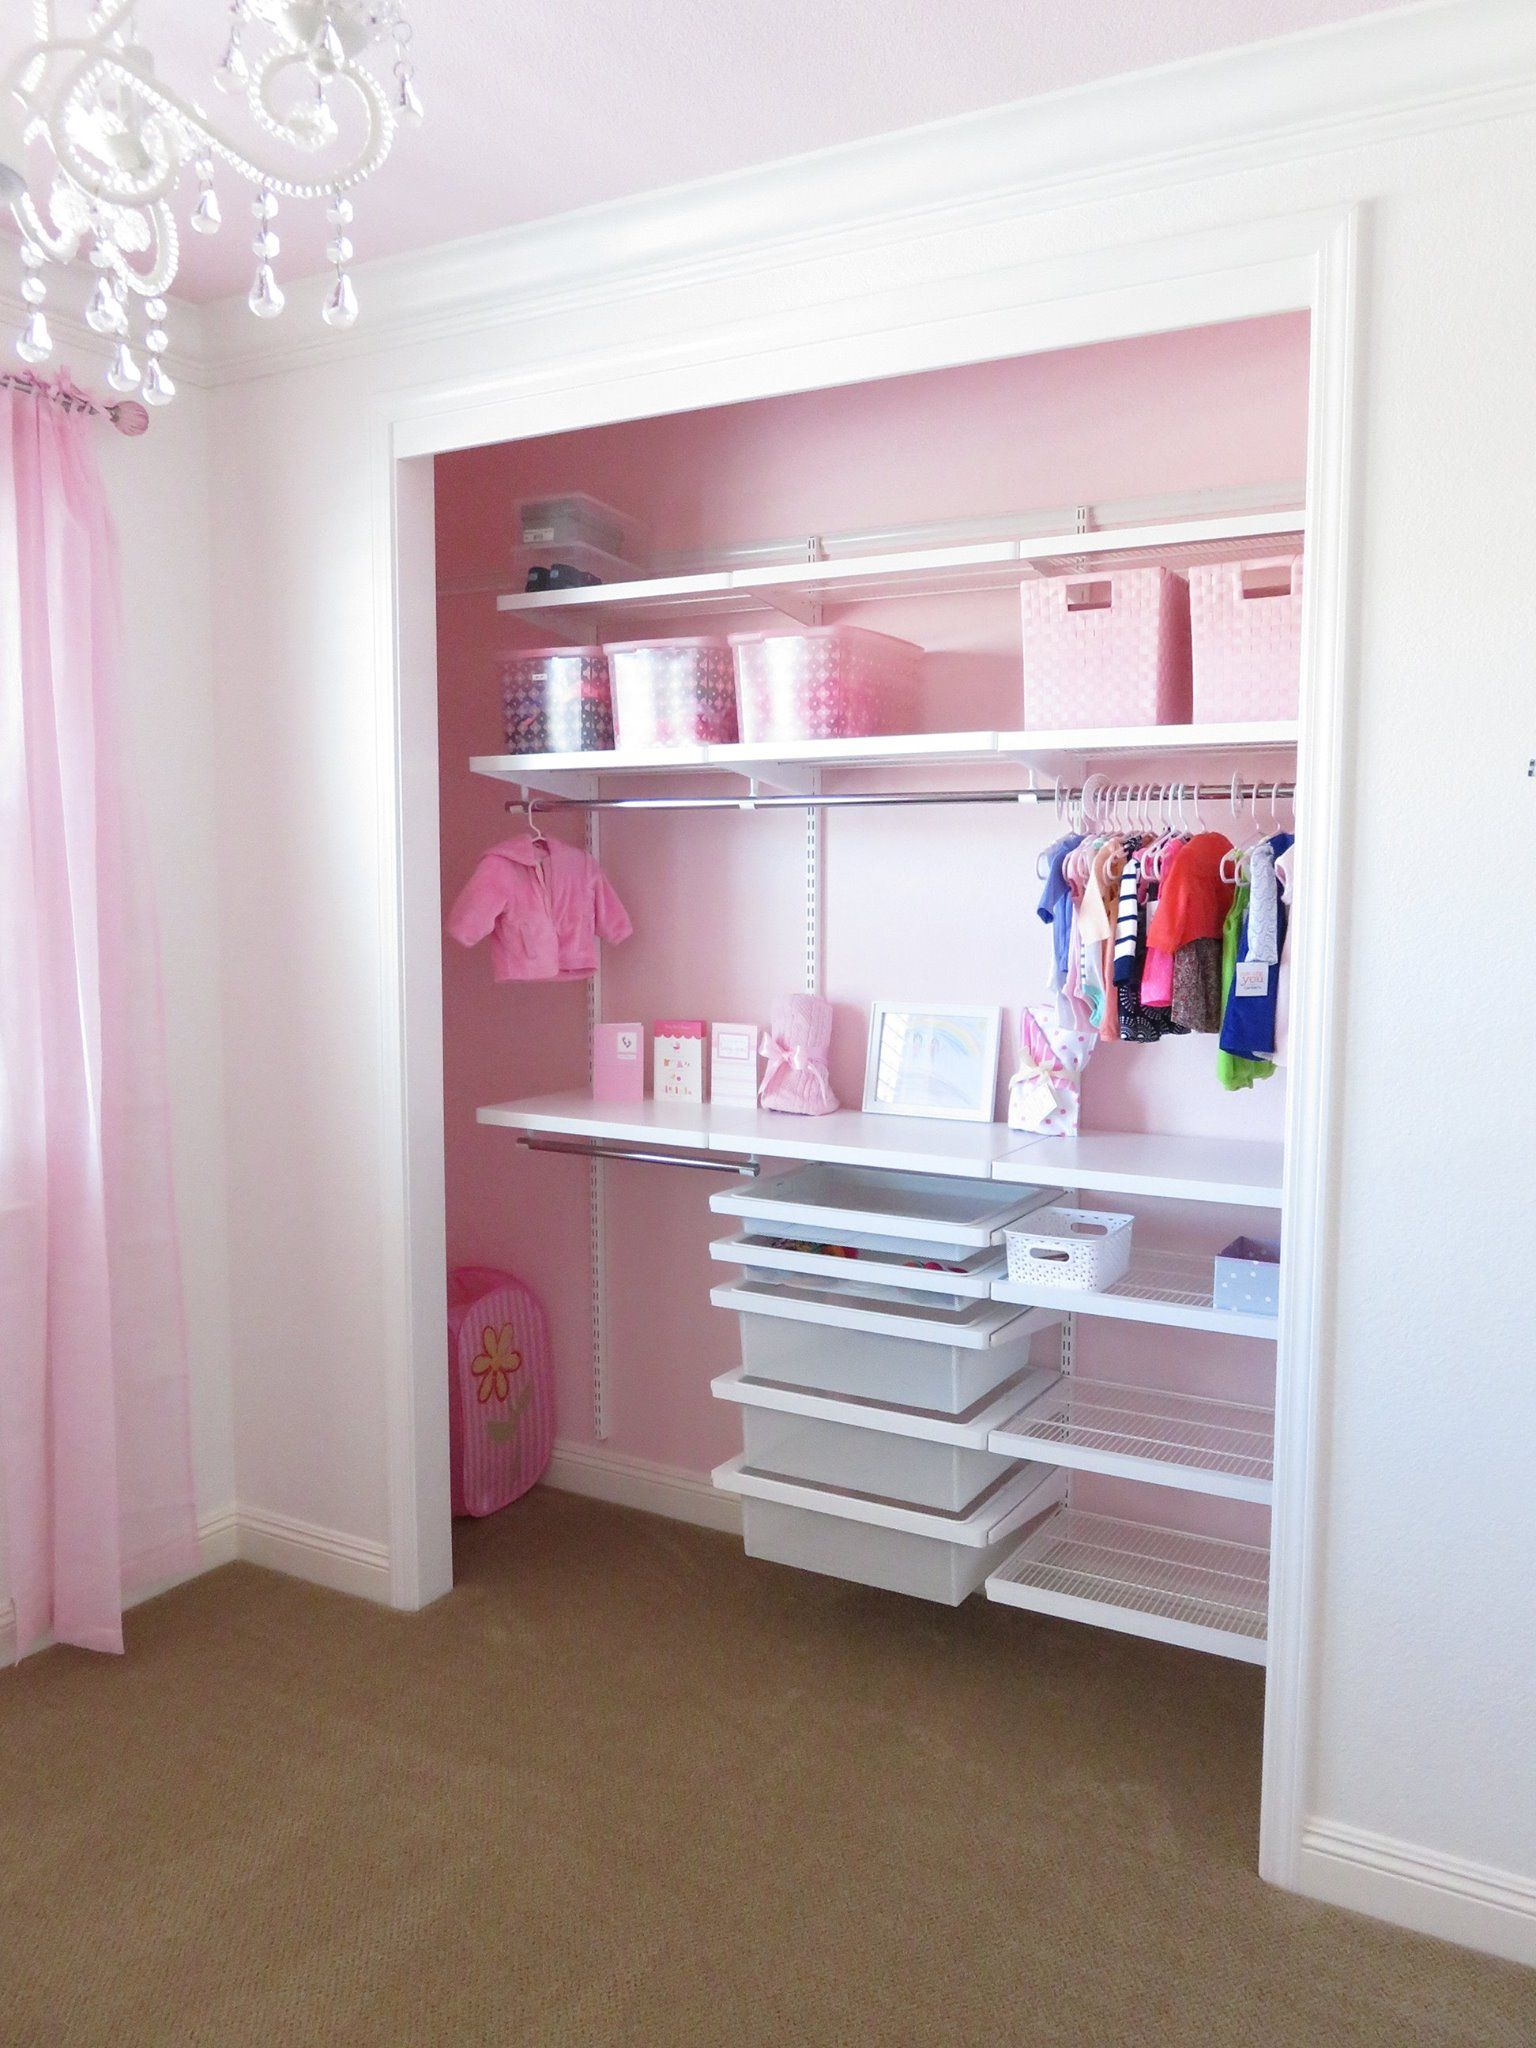 My baby daughter's closet. love it! #tcs #thecontainerstore #elfa … |  Toddler closet organization, Toddler closet, Kids closet organization